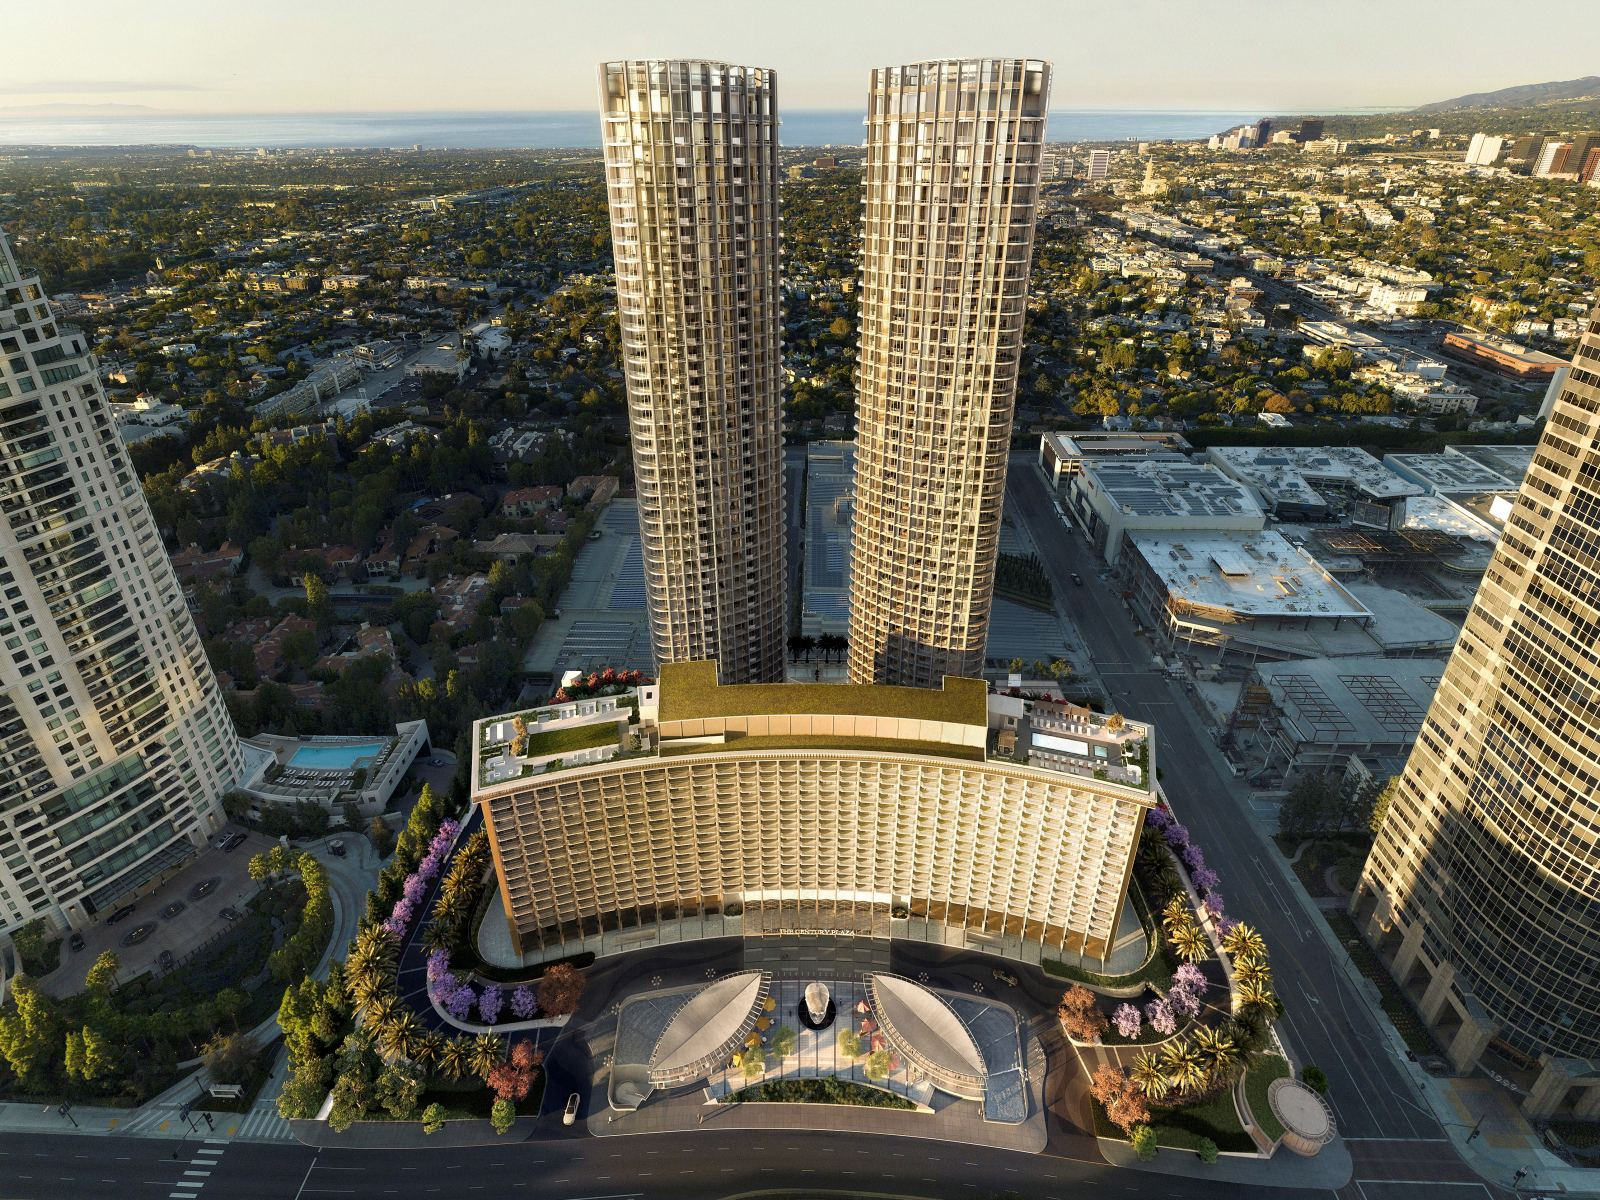 Rendering of the Fairmont Century Plaza